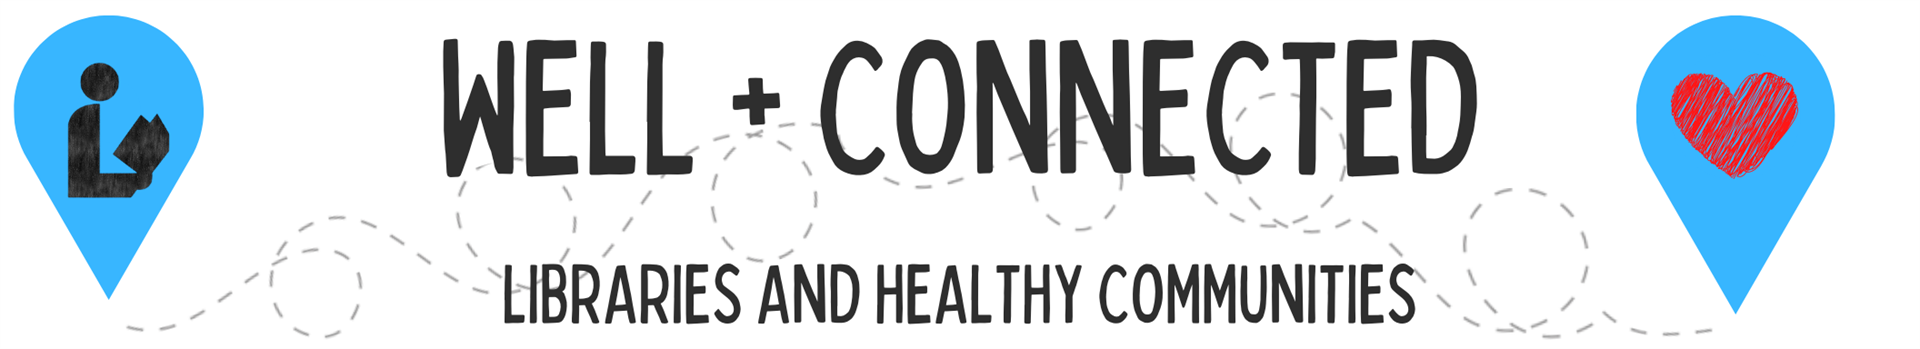 Well + Connected: Libraries and Healthy Communities